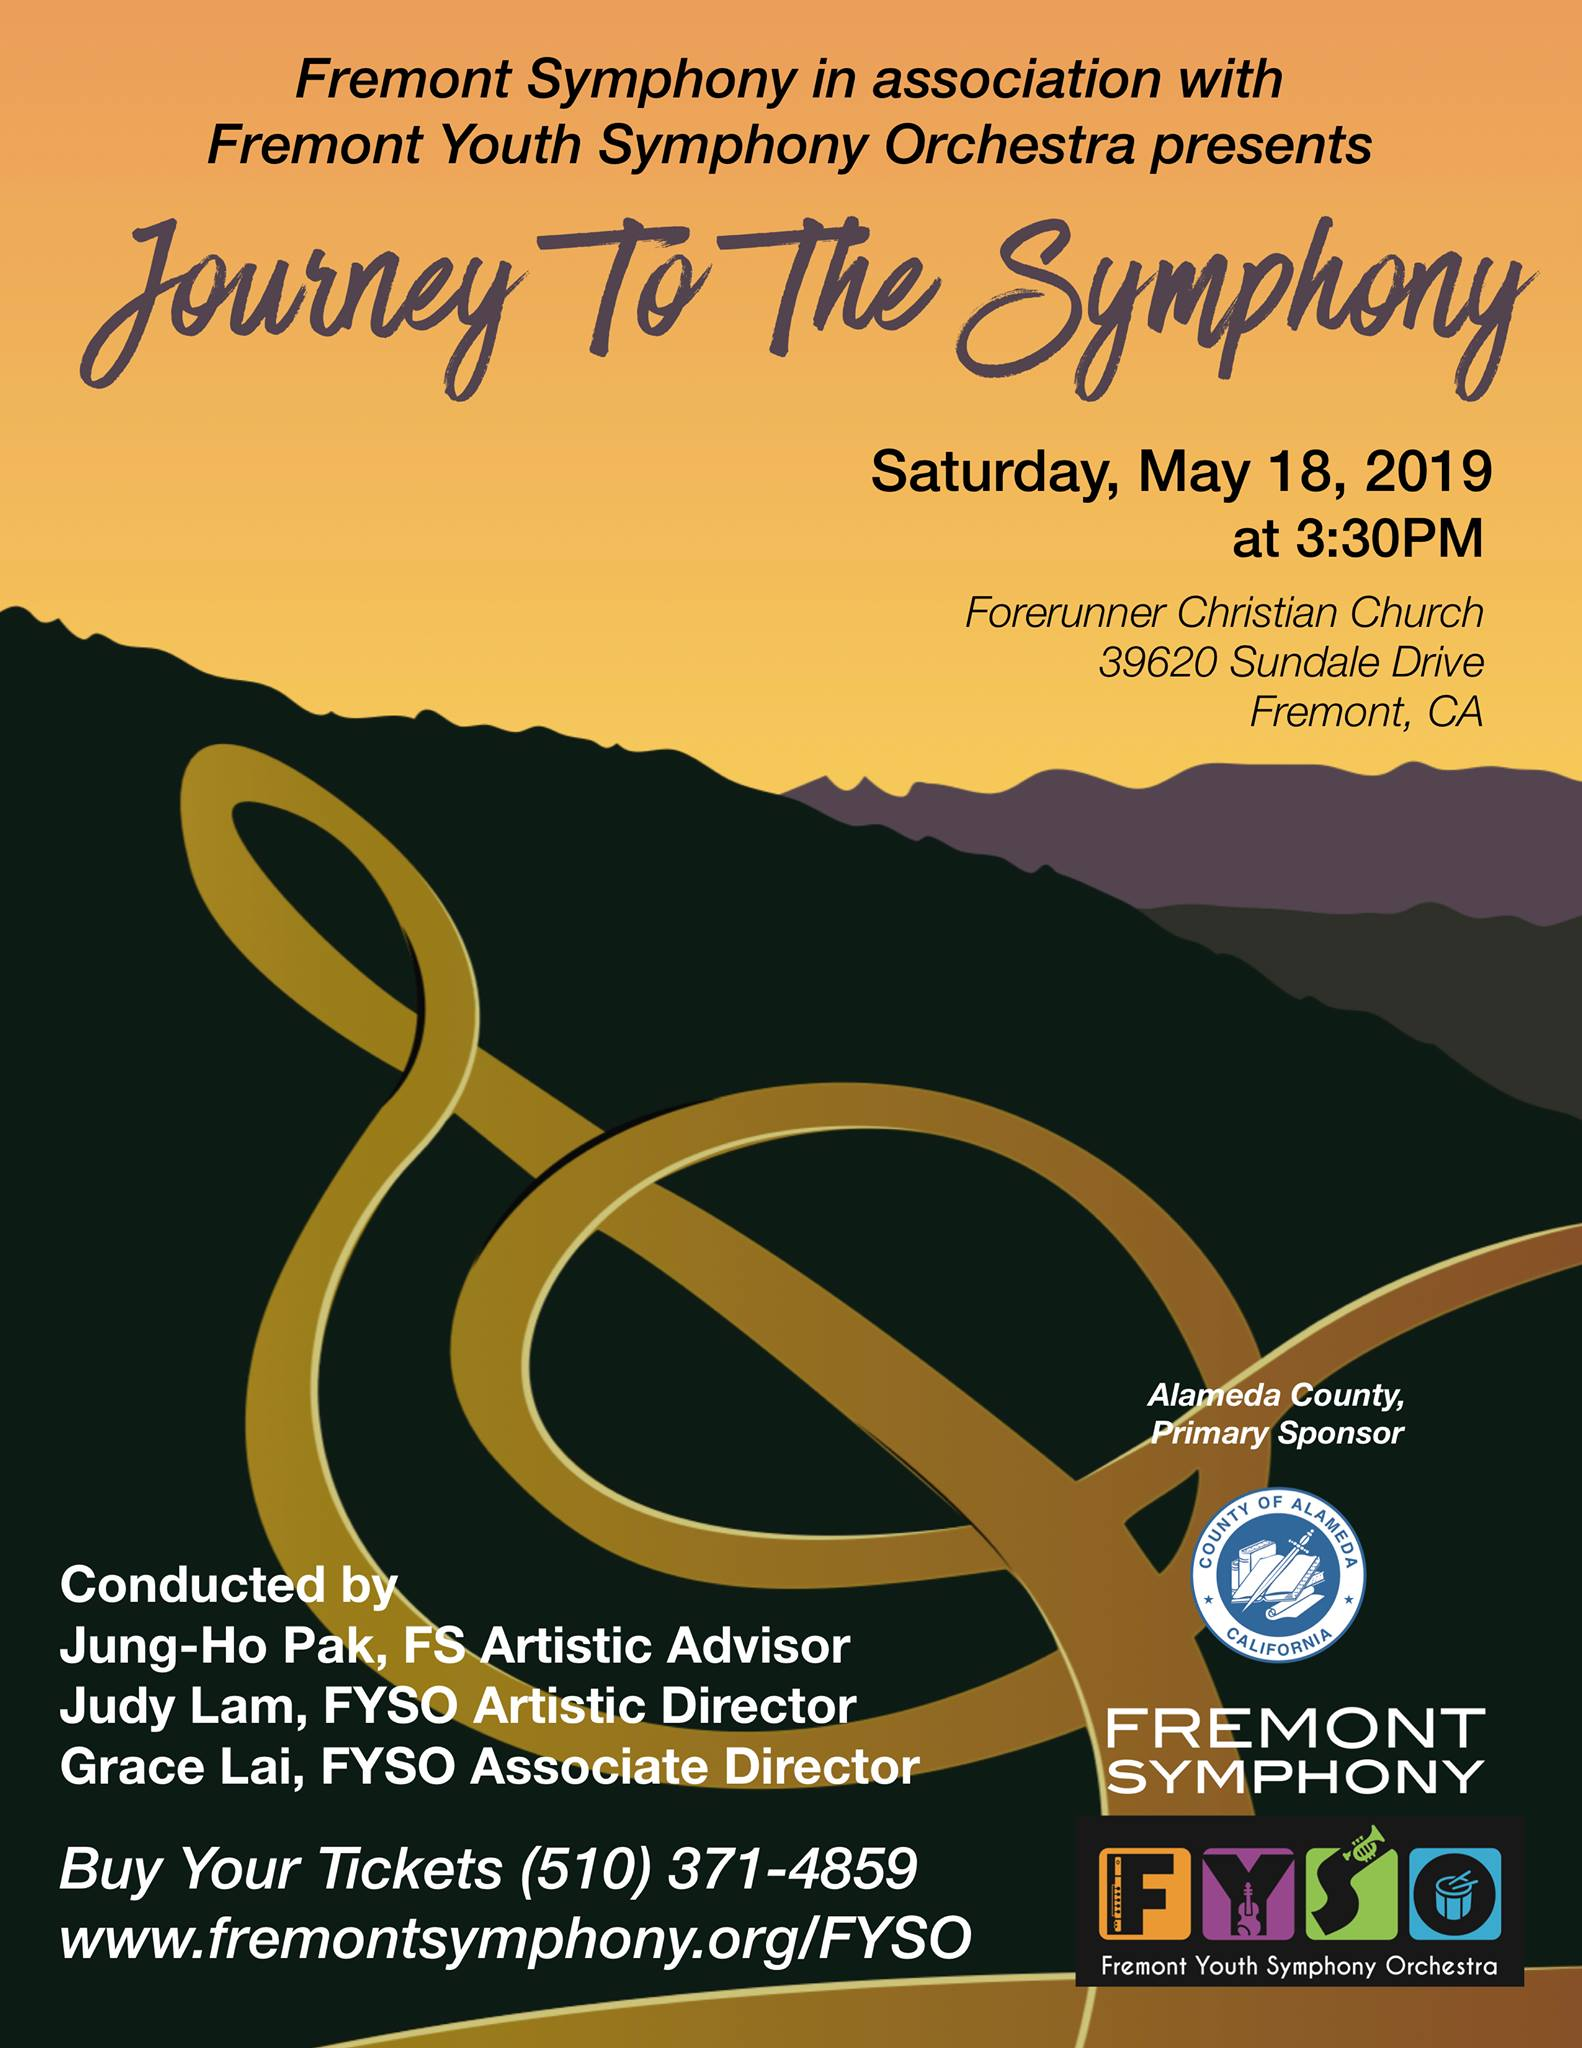 Journey to the Symphony 5-18-19 Poster.jpg